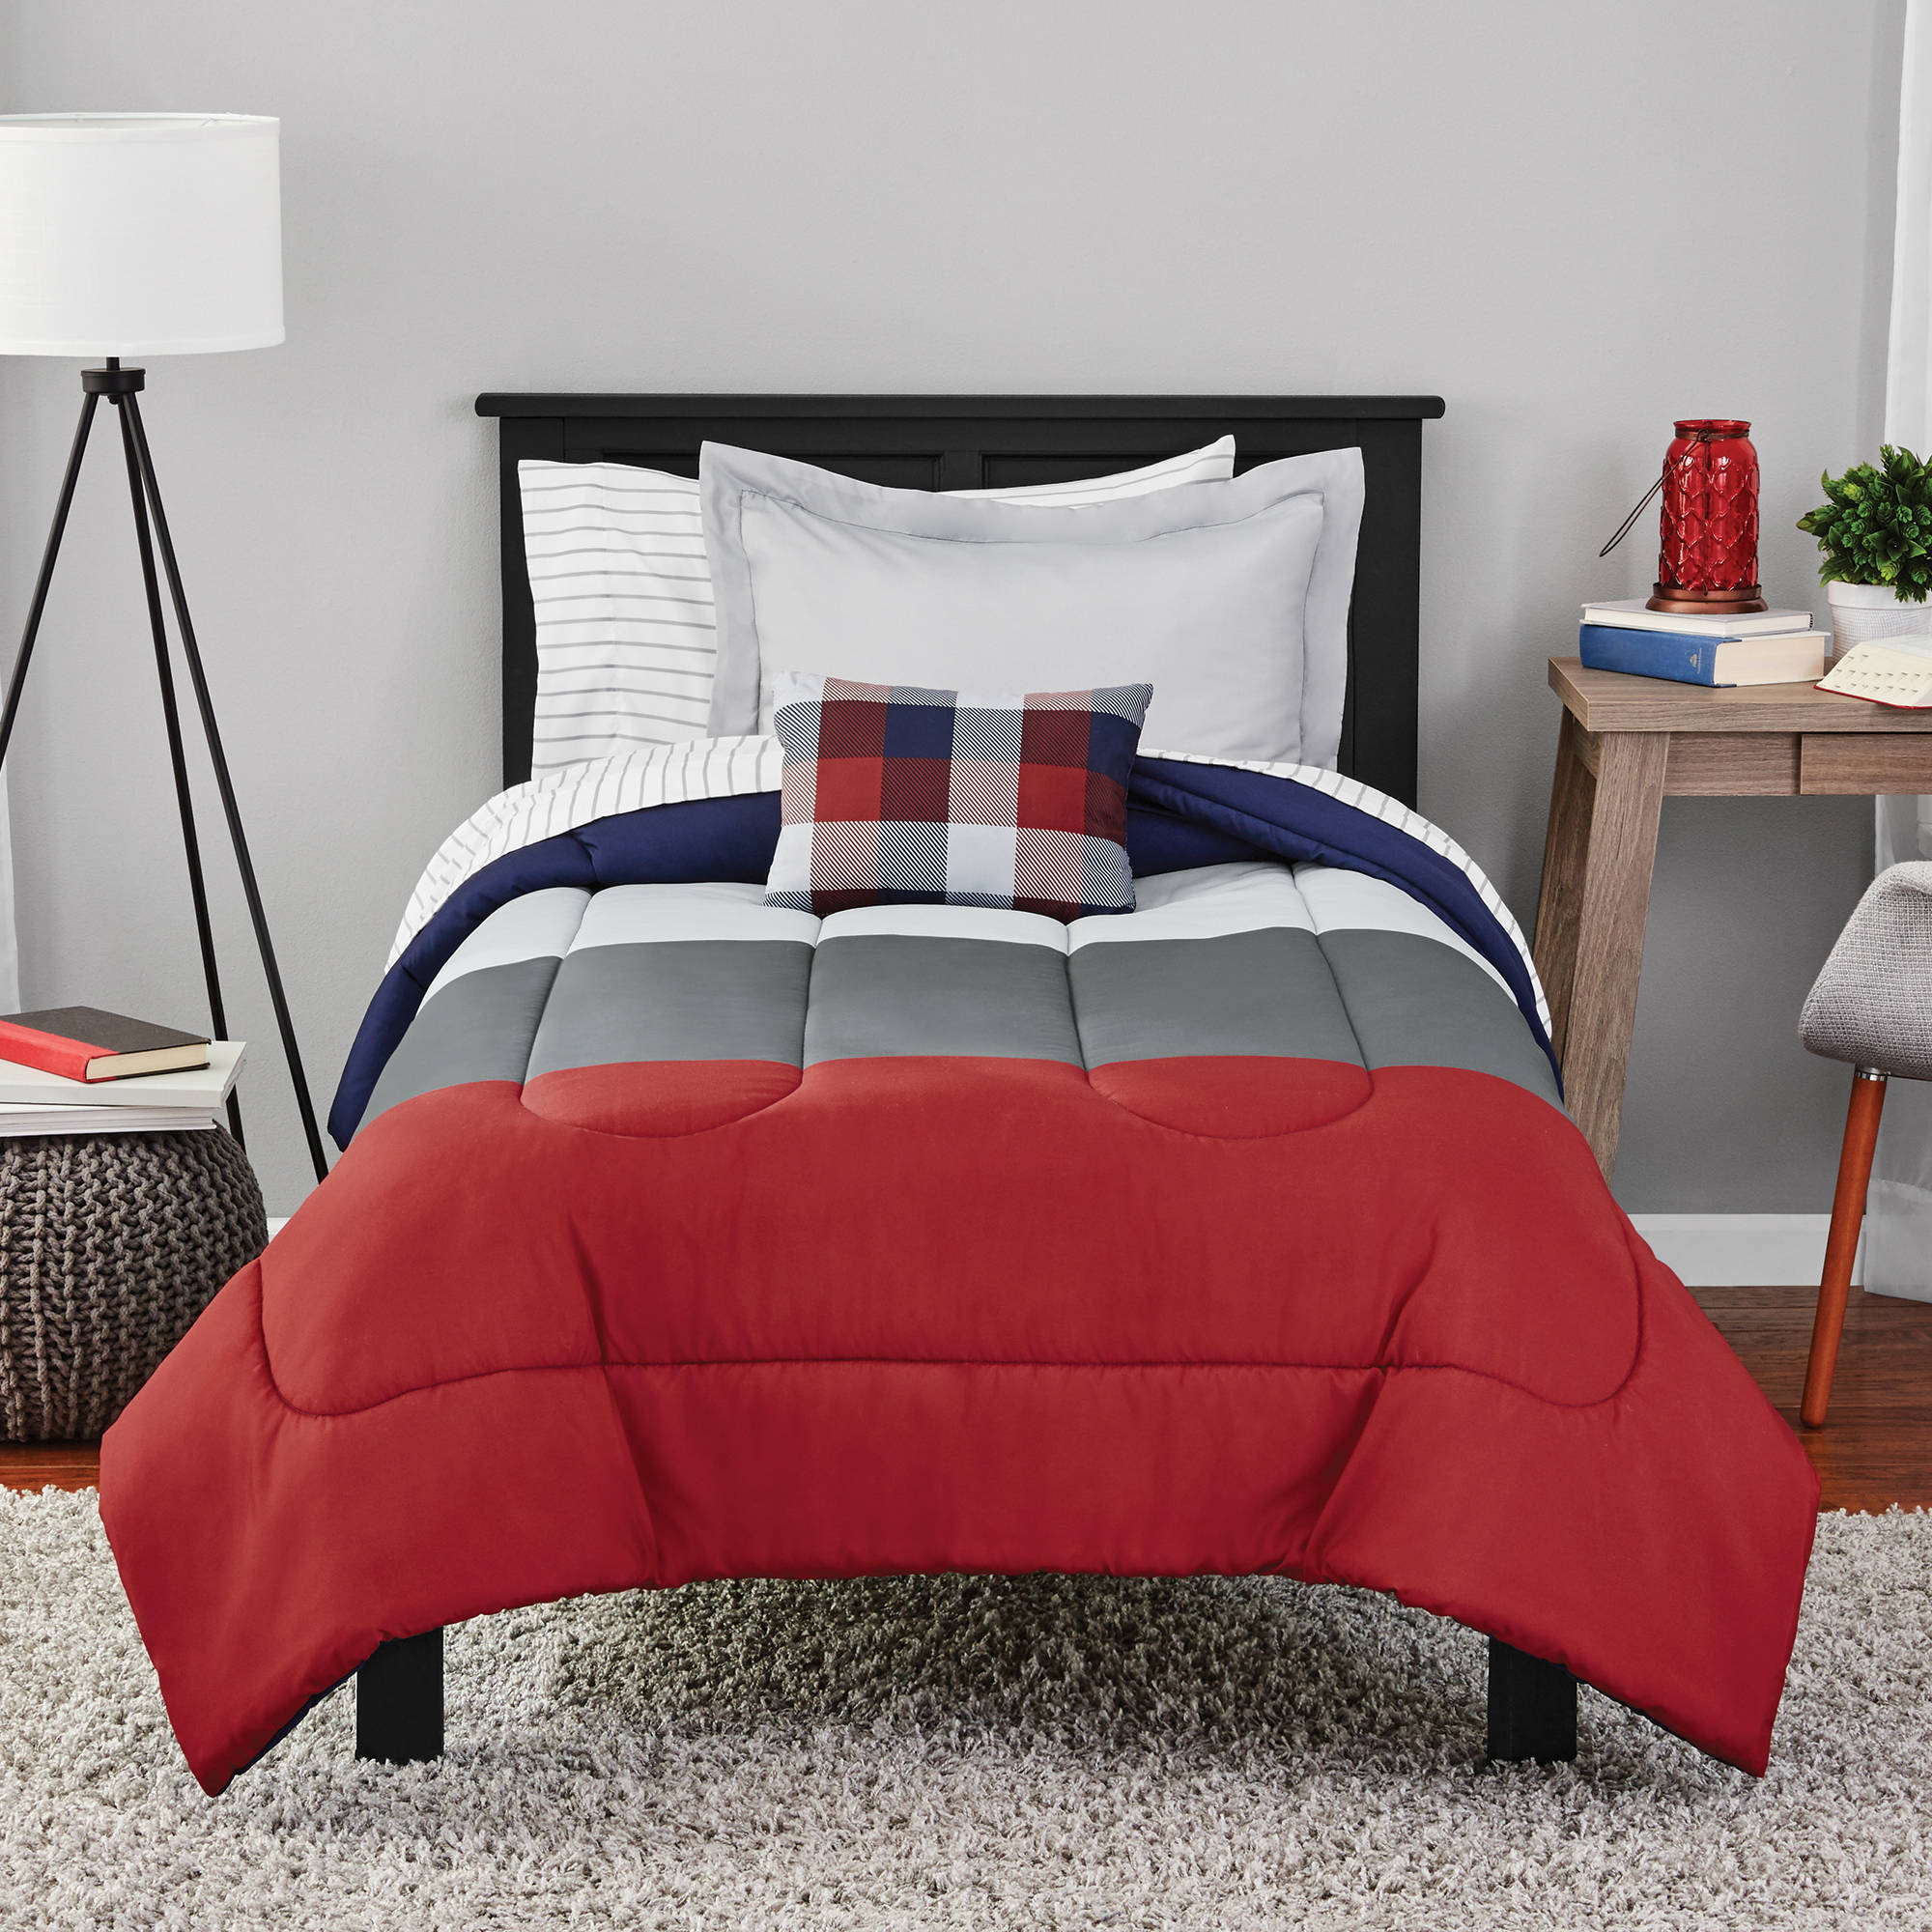 Mainstays Colorblock Bed in a Bag Bedding Set